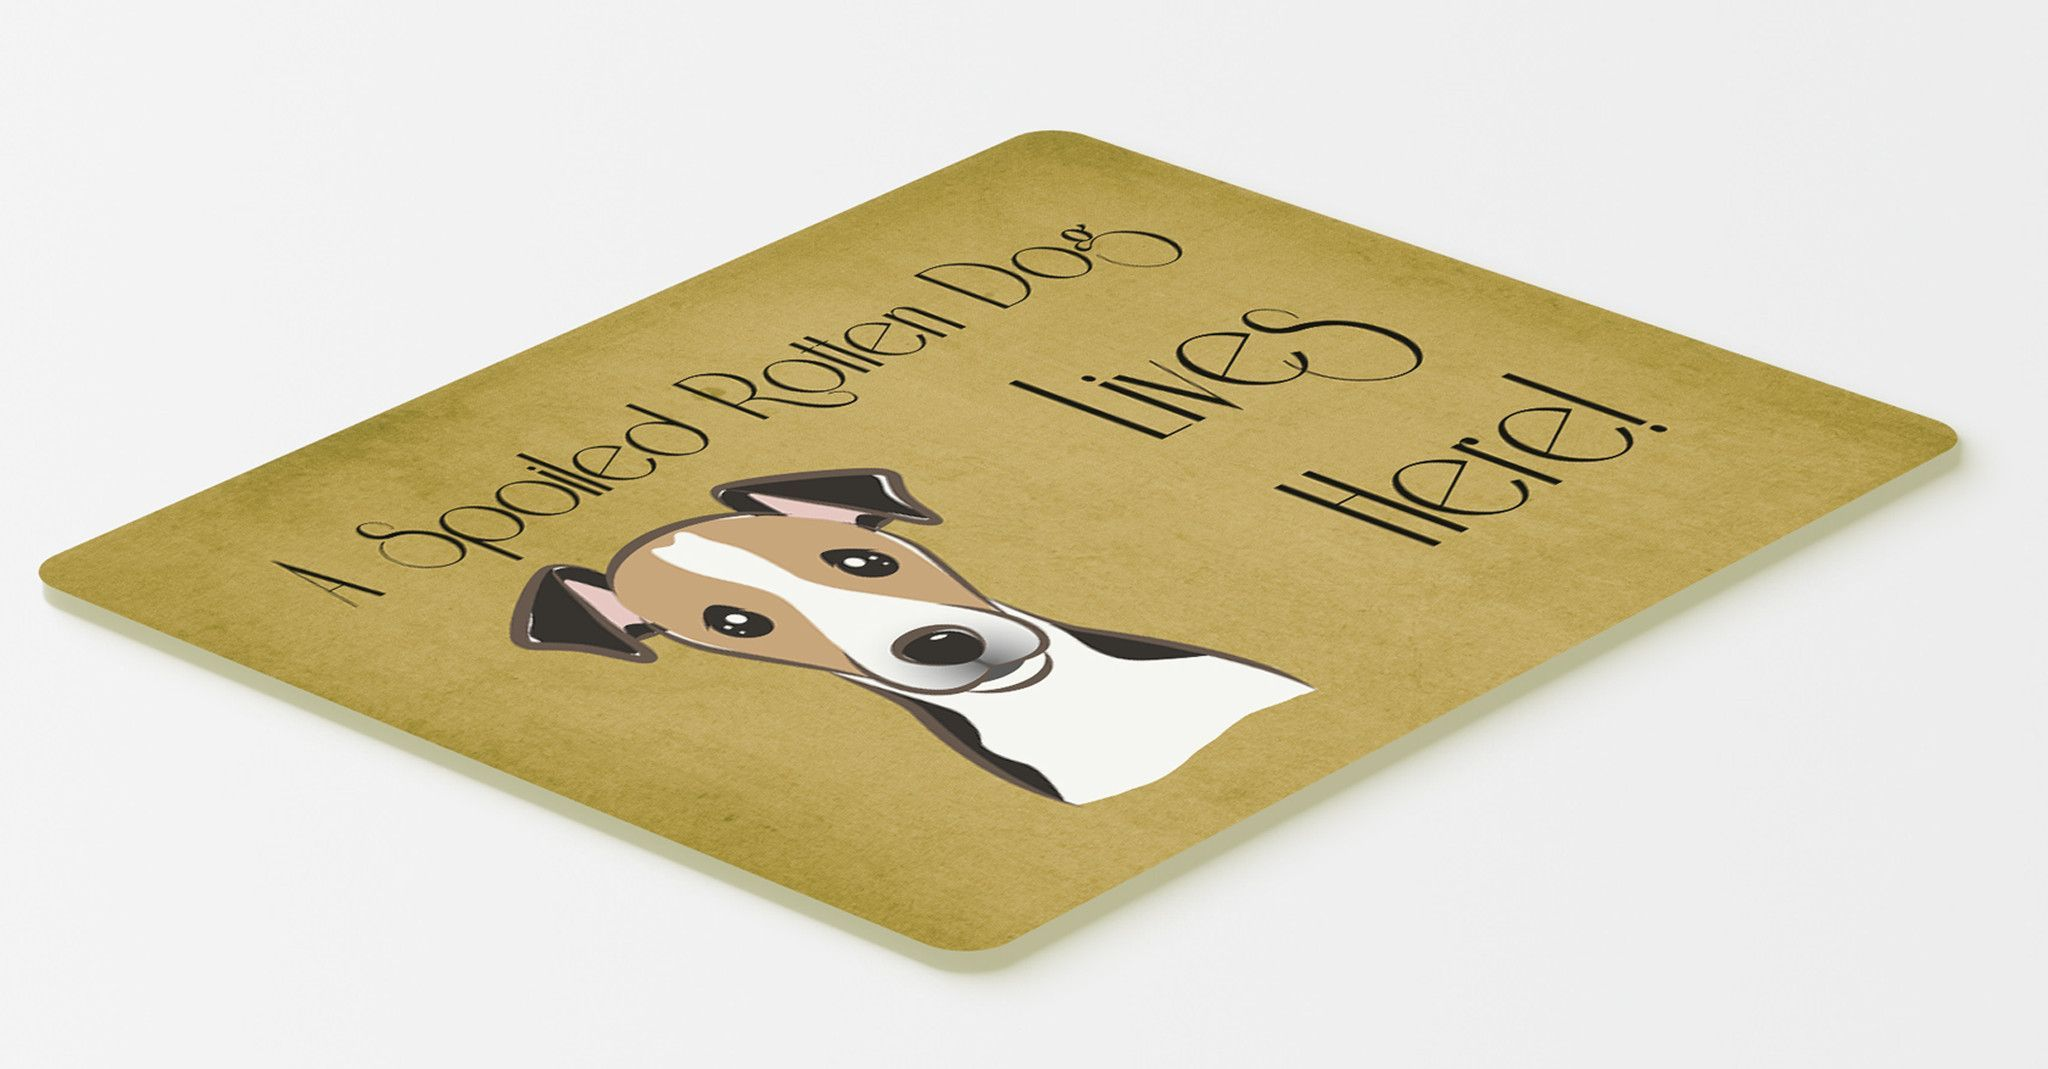 Jack Russell Terrier Spoiled Dog Lives Here Kitchen or Bath Mat 20x30 BB1509CMT